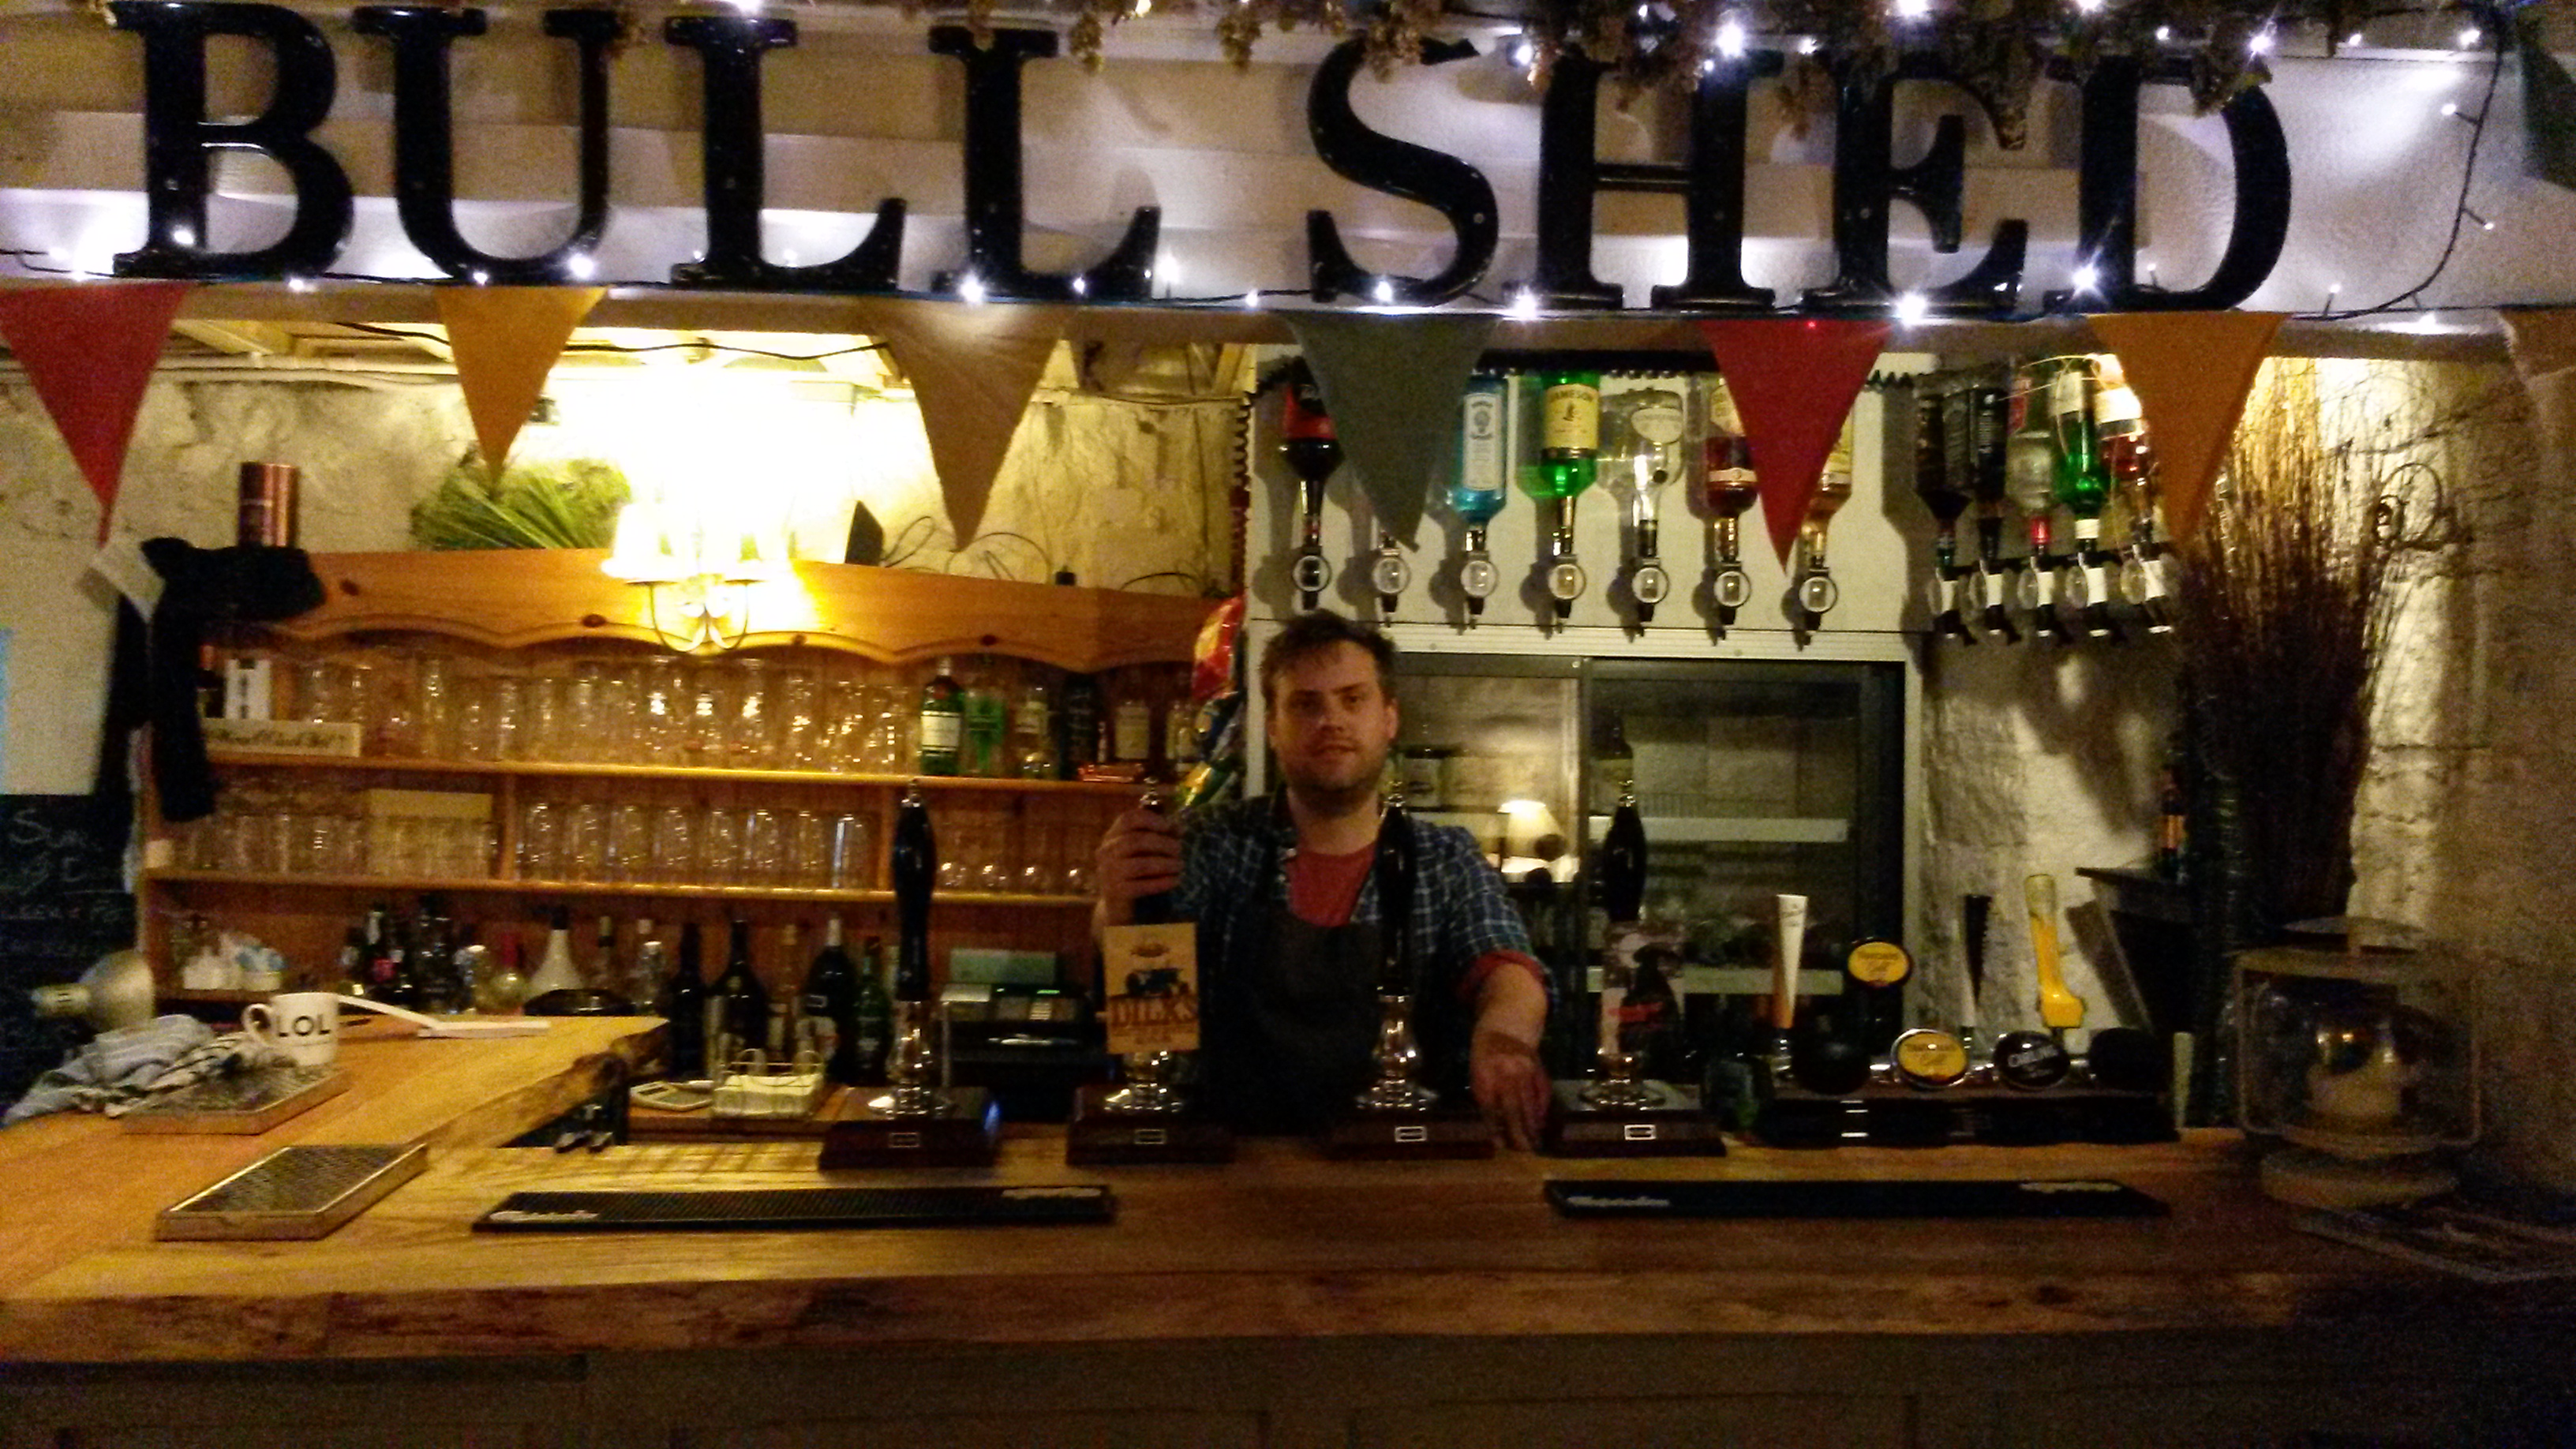 The Bull Shed bar